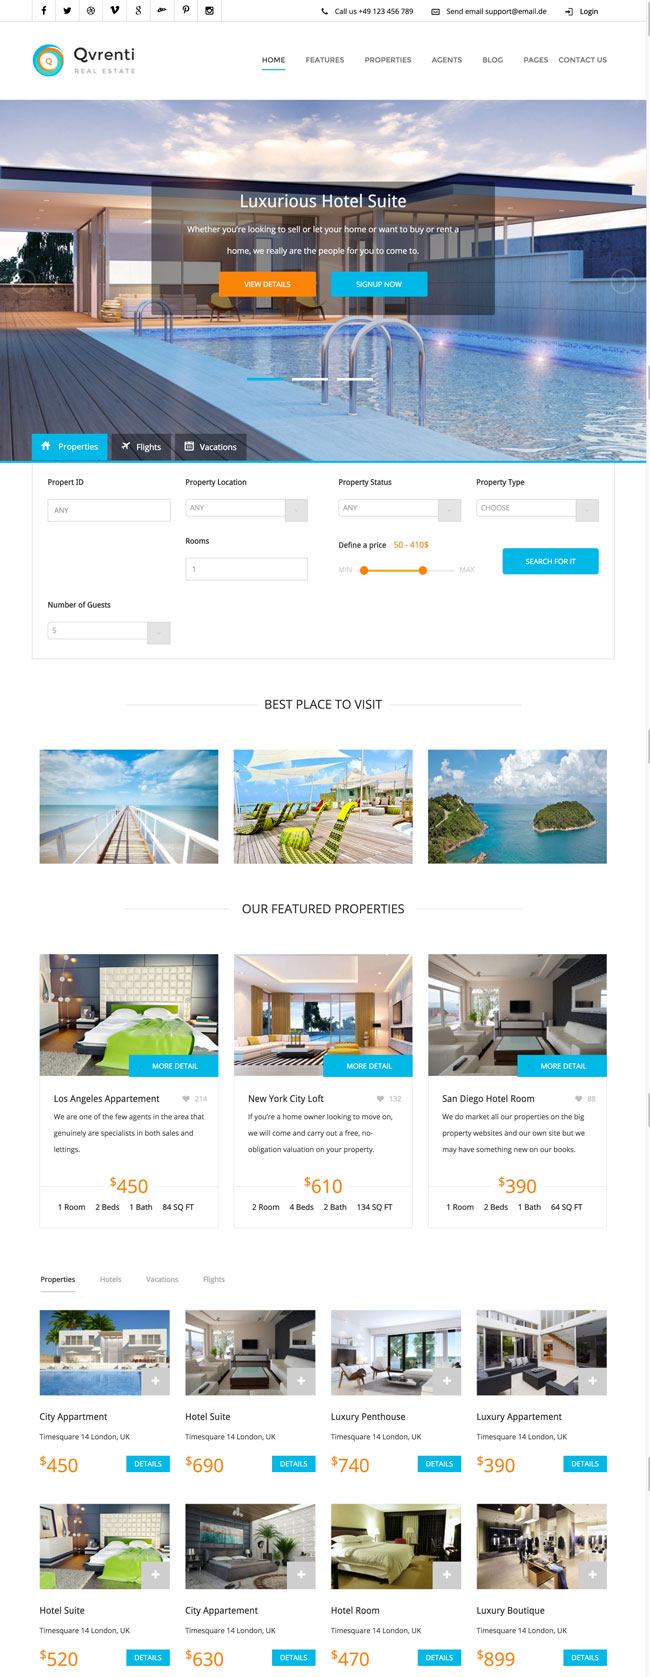 Qvrenti-Responsive-Real-Estate-HTML5-Template